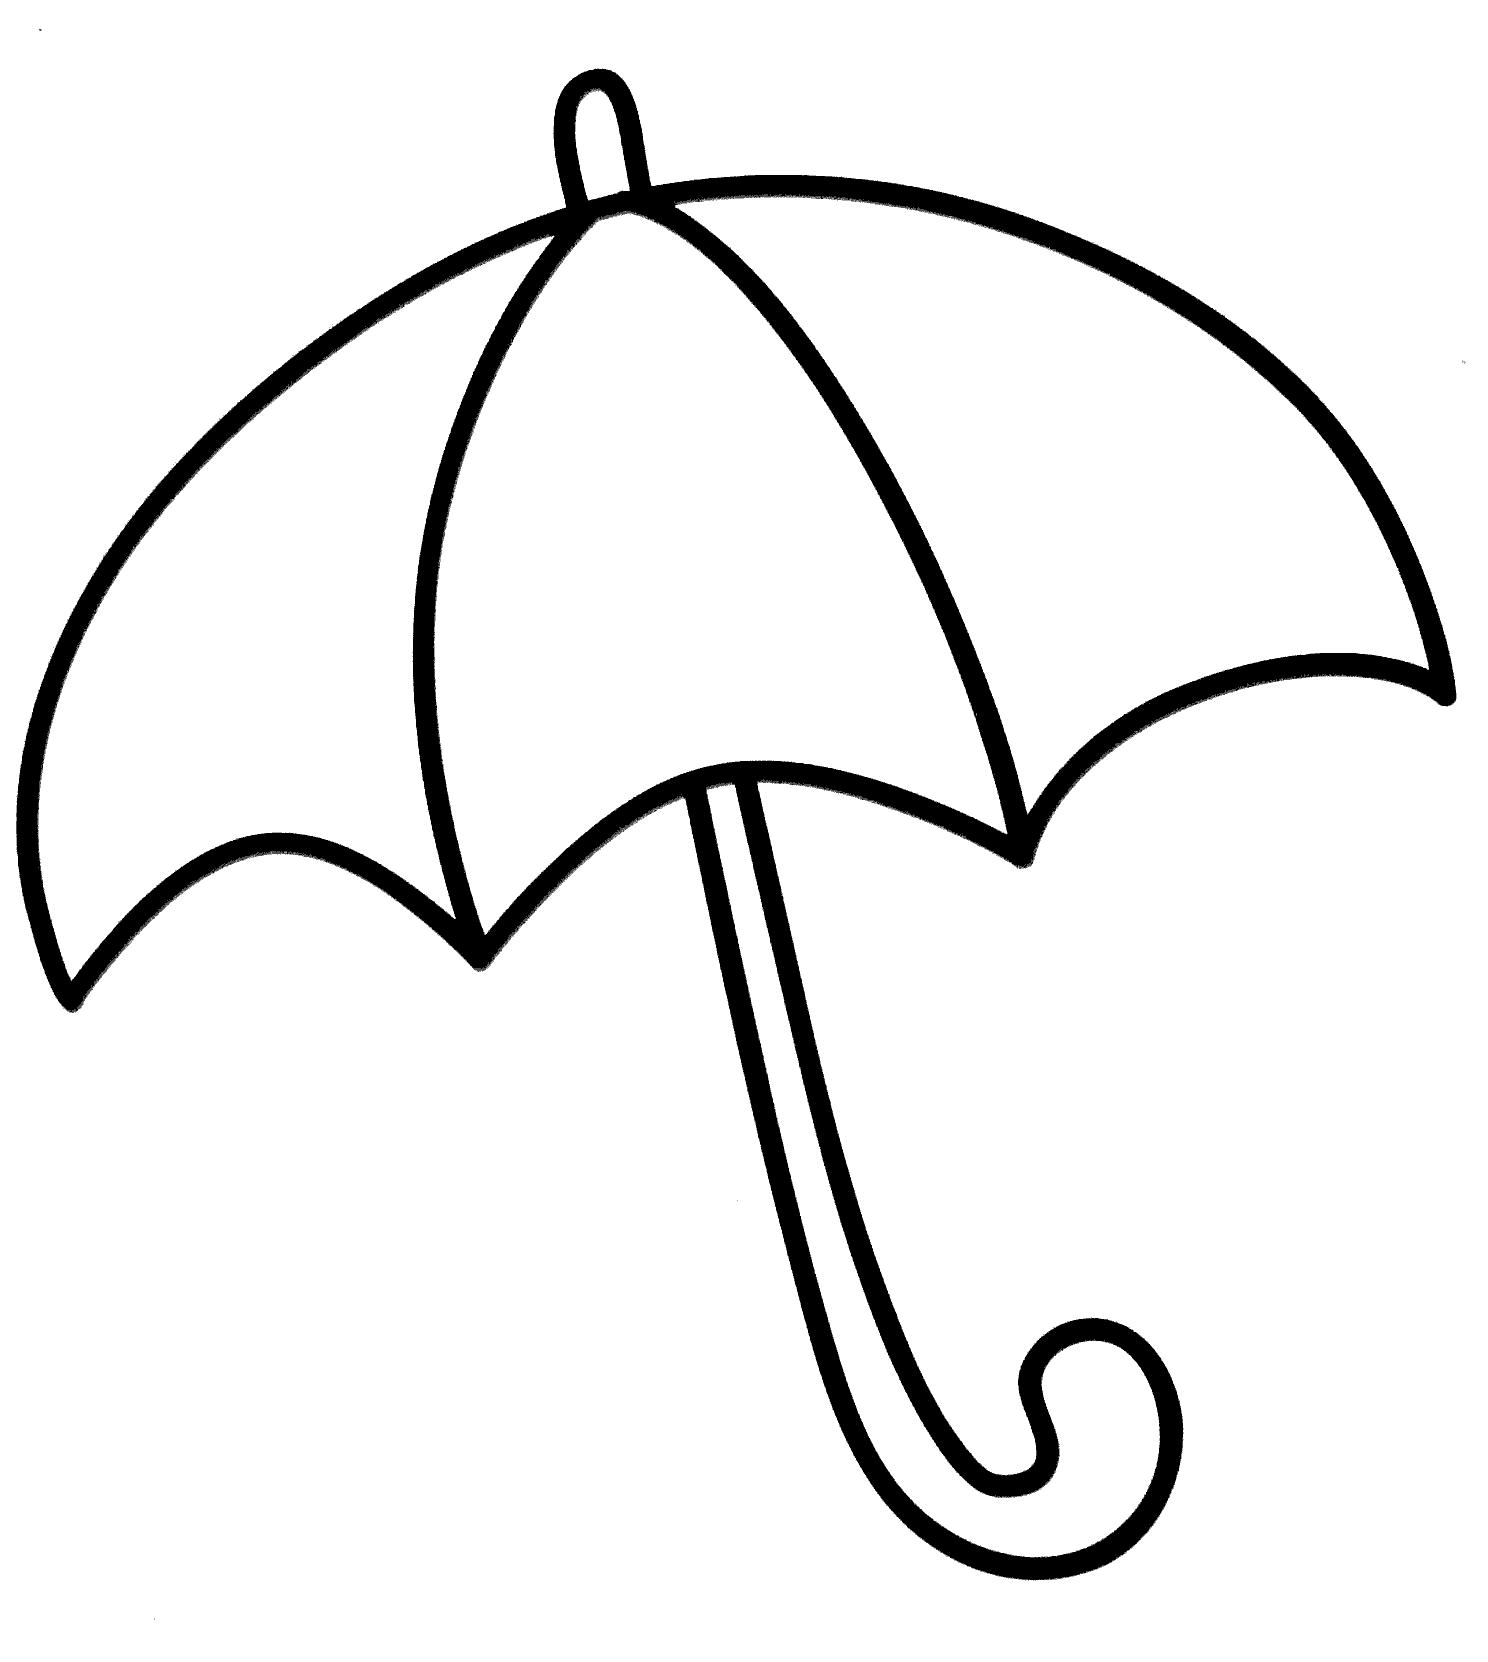 Umbrella Coloring Page Umbrella Coloring Page Free Download Best Umbrella Coloring Page